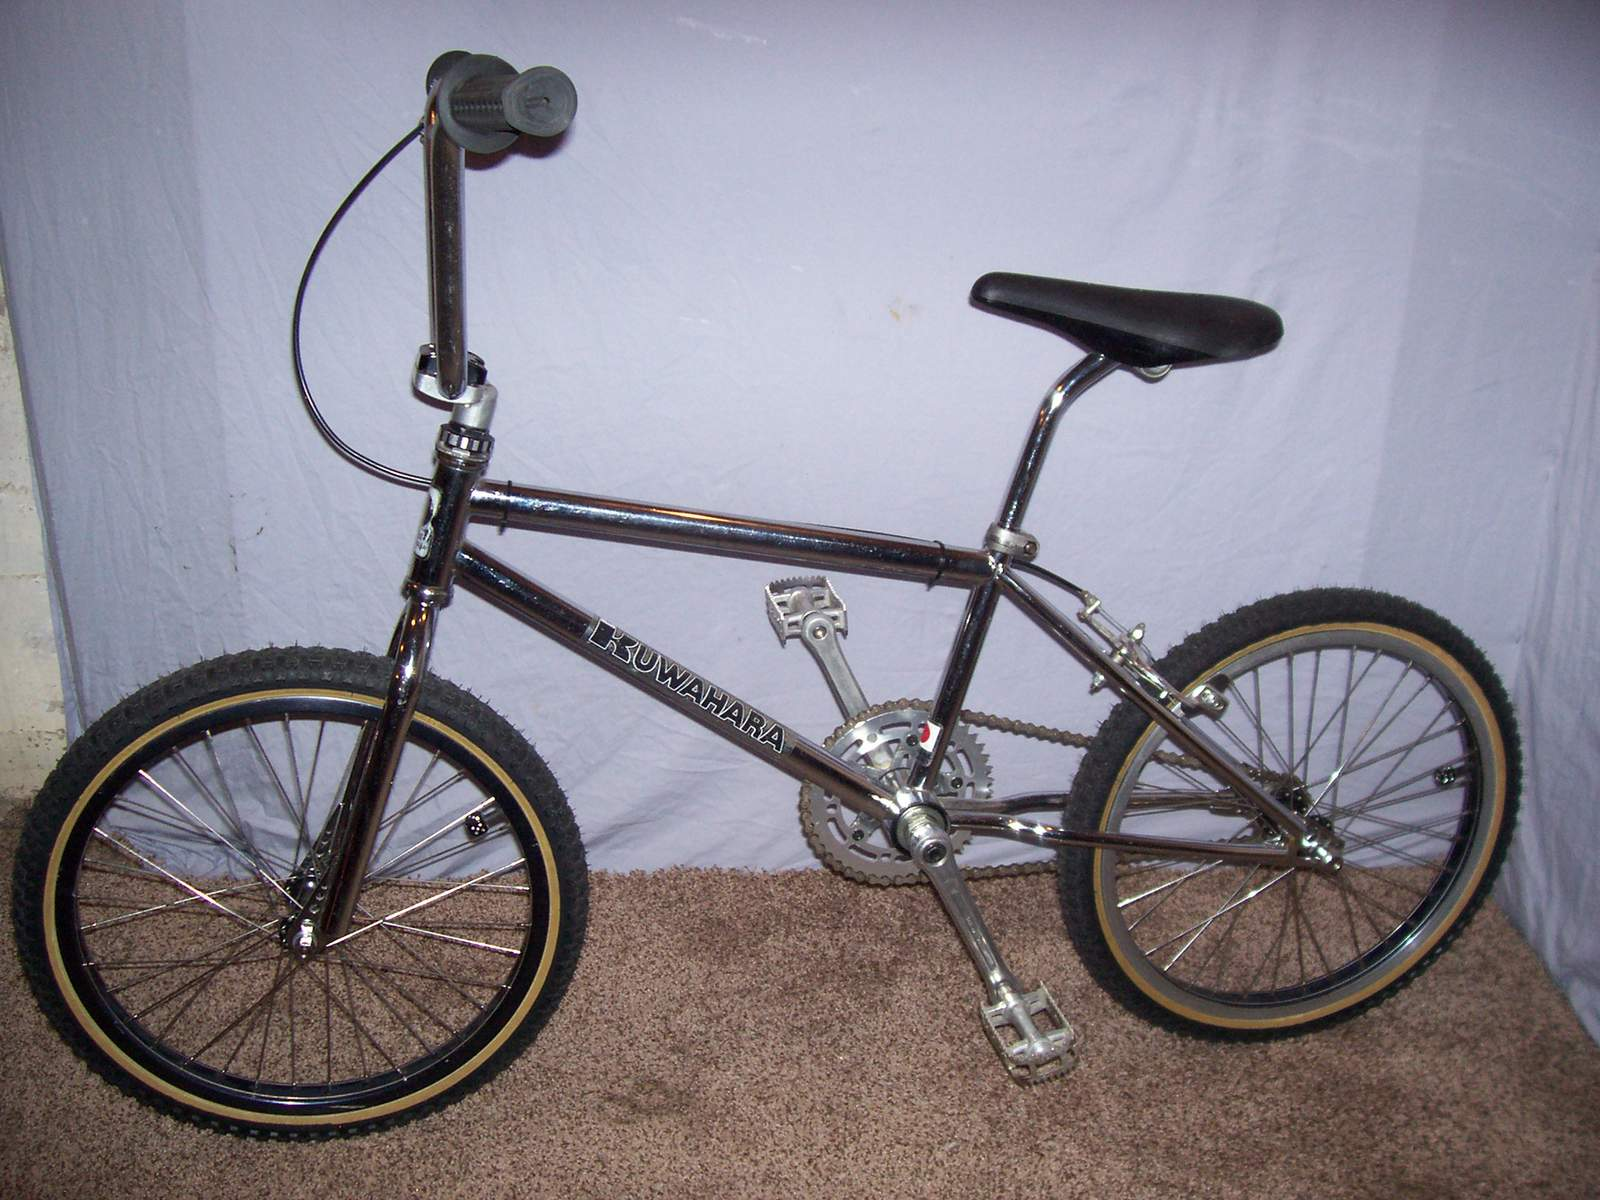 http://uploads.bmxmuseum.com/user-images/61851/101_064559ece91429.jpg